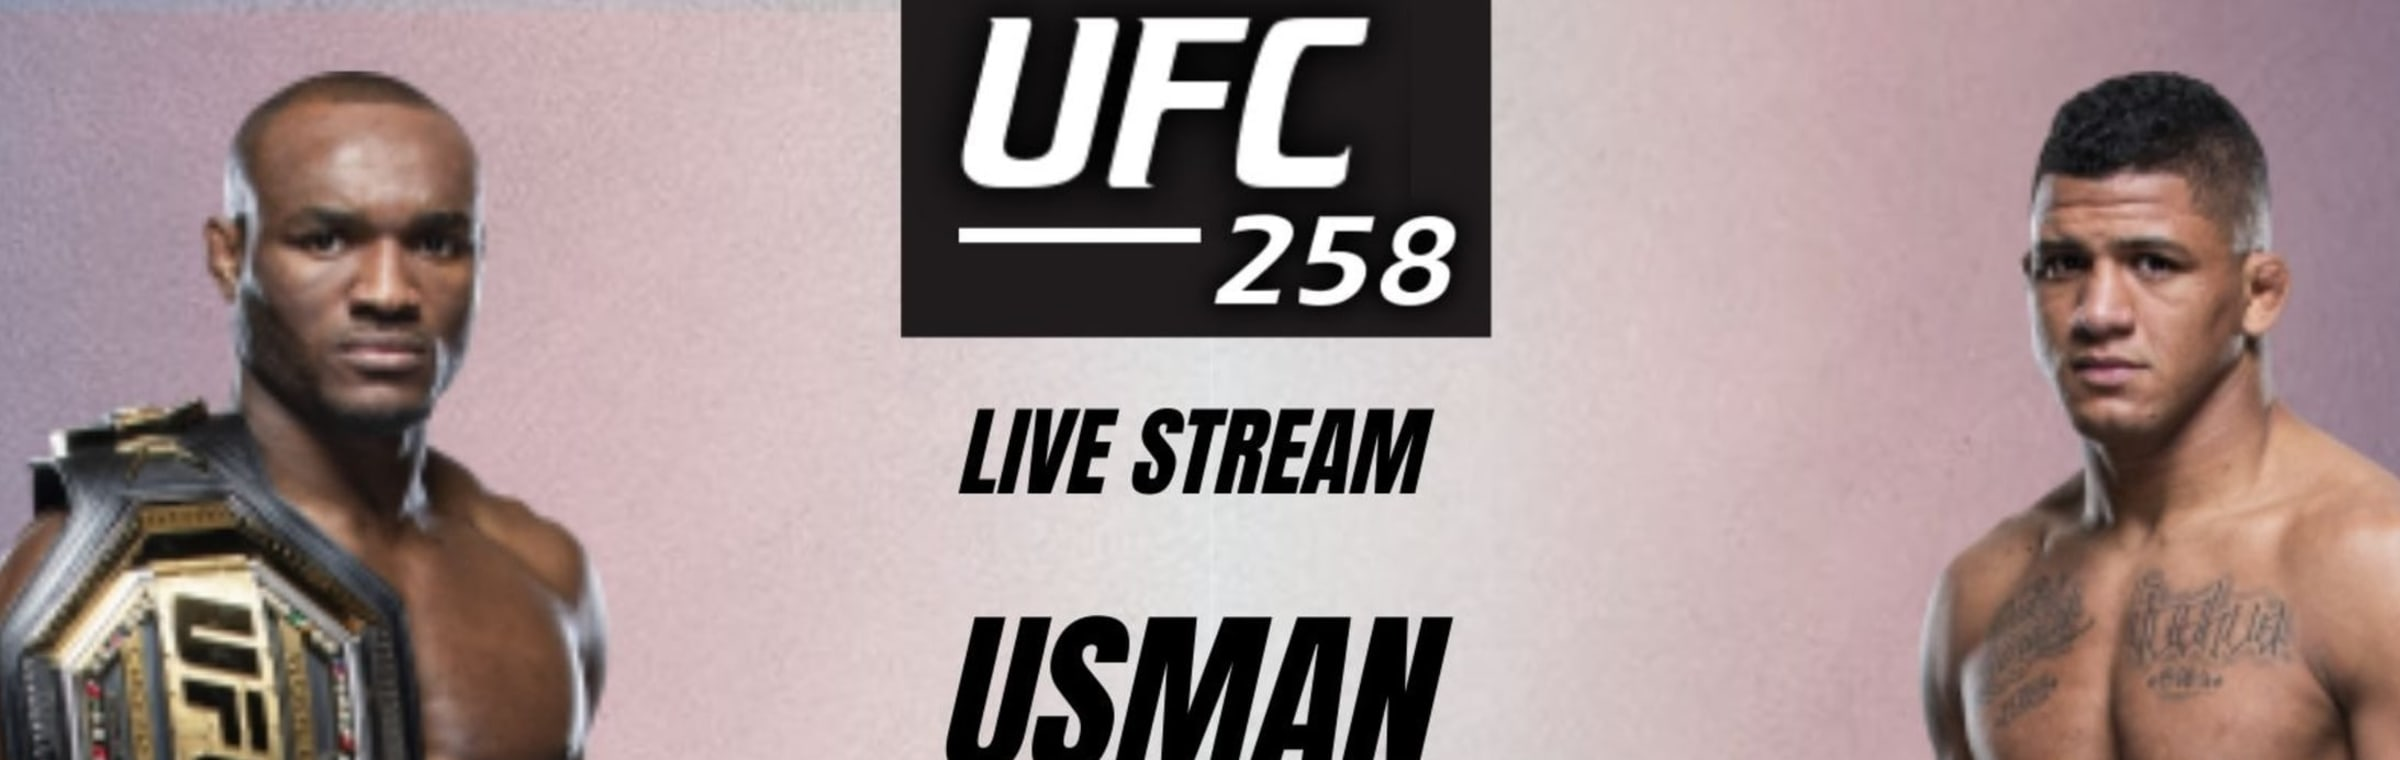 mmastreamsfree Unlimited access to the worlds biggest events UFC 258 Live Stream and subscribe for UFC 258 exclusive fights original shows & more how